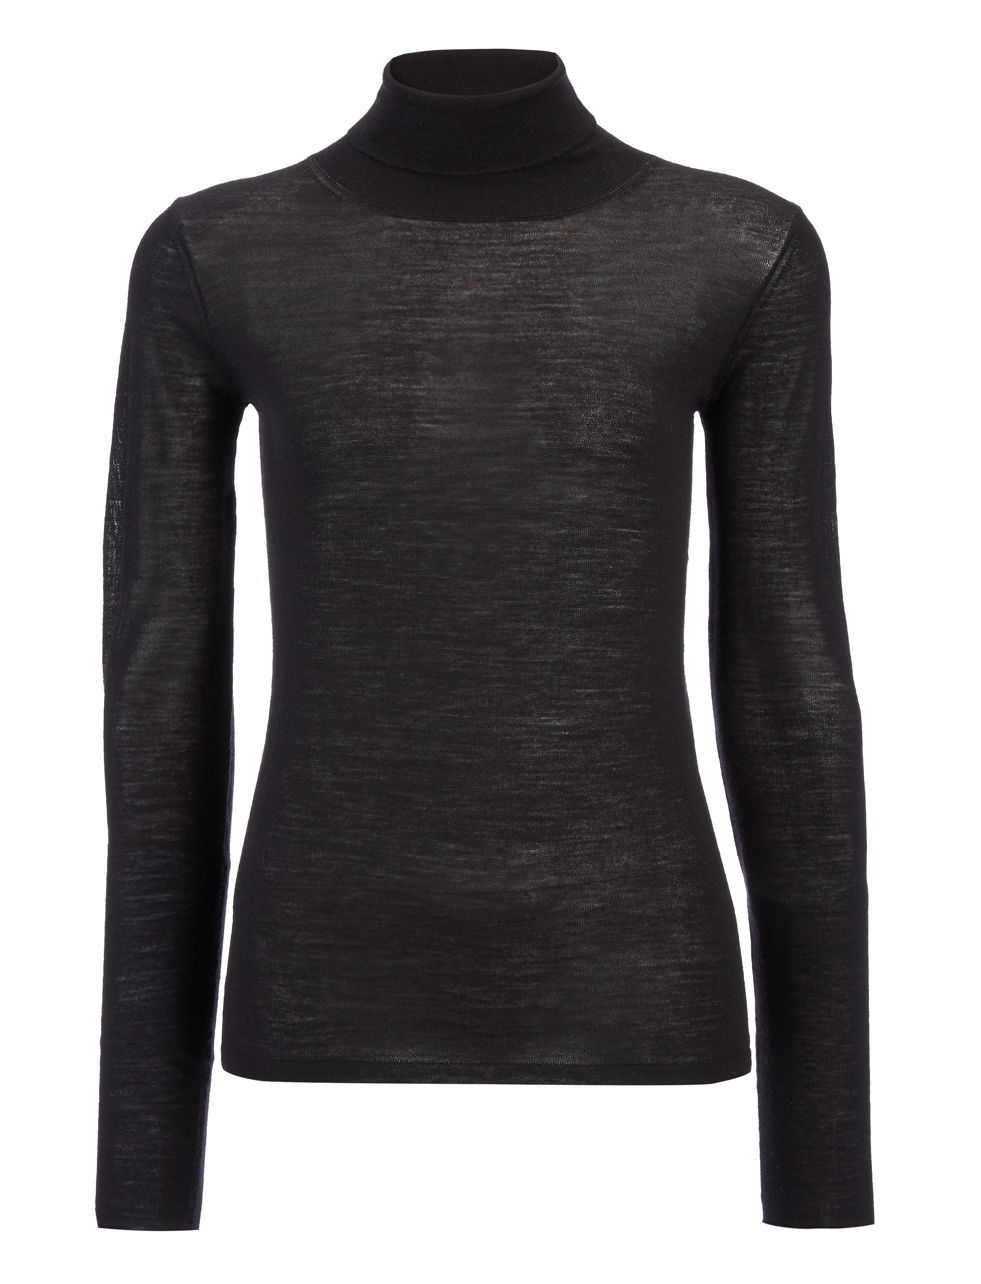 Transparent Roll Neck Knit In Black - pattern: plain; neckline: roll neck; predominant colour: black; occasions: casual; length: standard; style: top; fibres: wool - 100%; fit: body skimming; sleeve length: long sleeve; sleeve style: standard; texture group: knits/crochet; pattern type: fabric; season: a/w 2015; wardrobe: basic